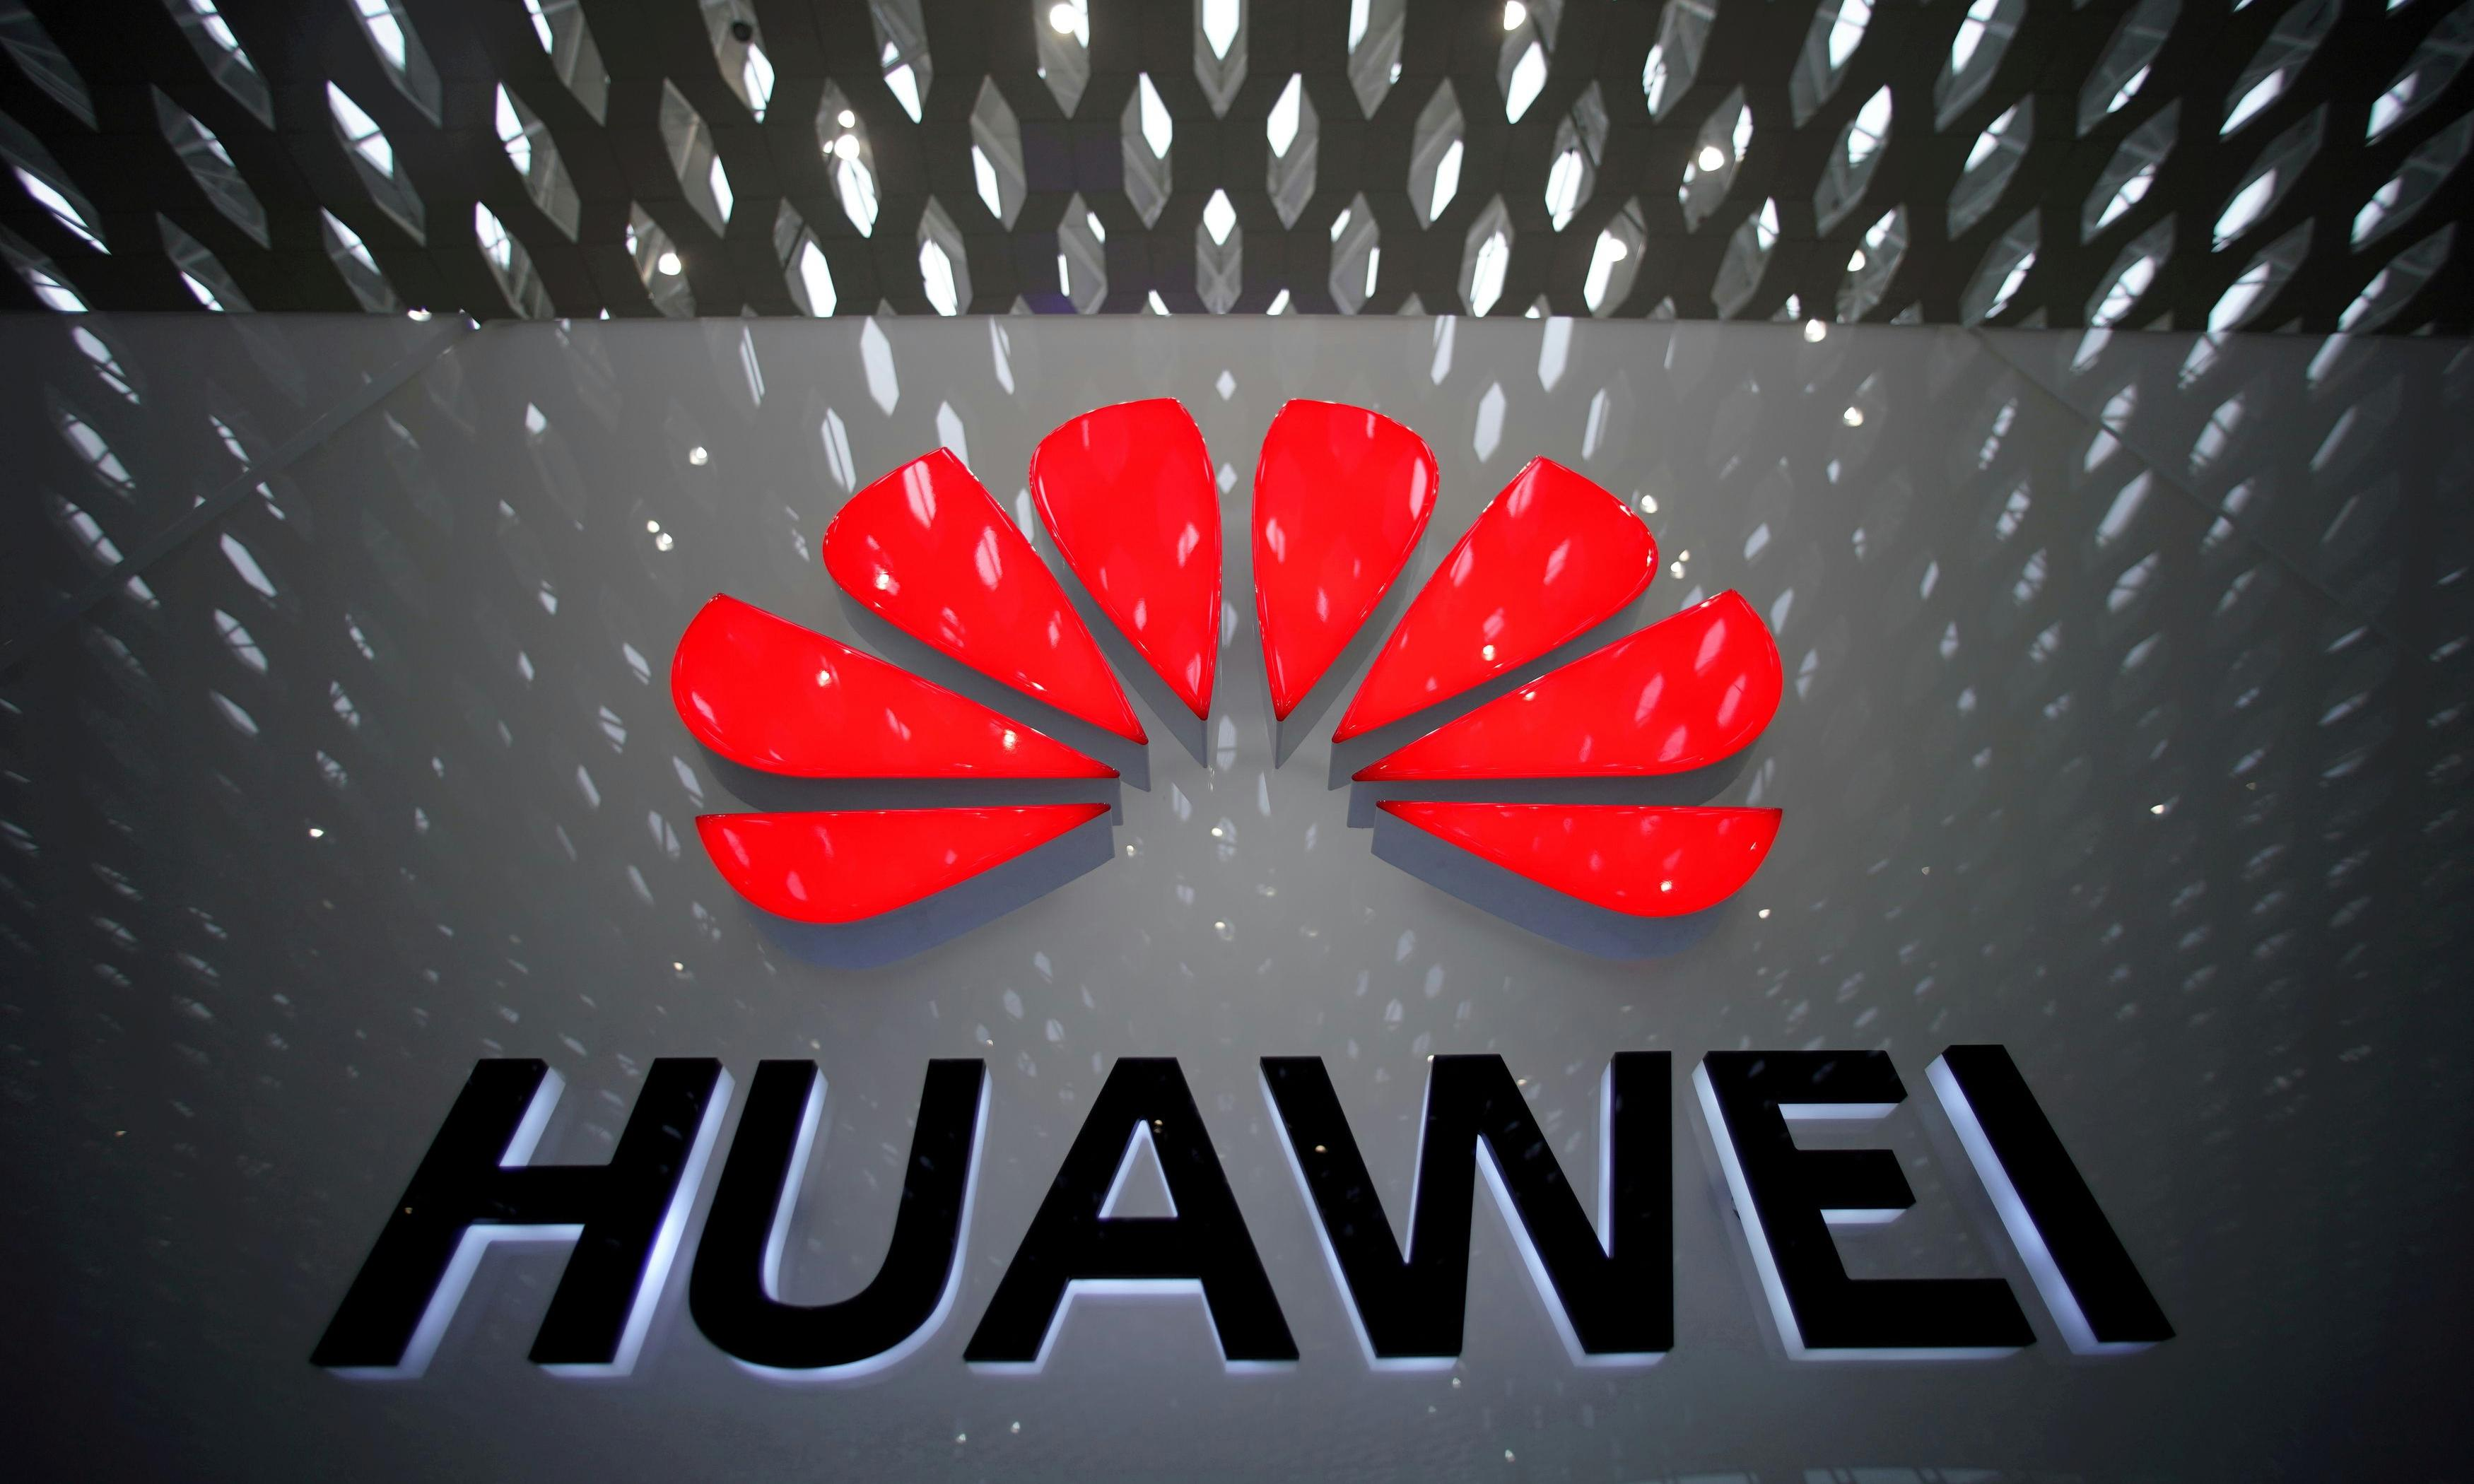 Huawei decision weighs technological benefits and political risks